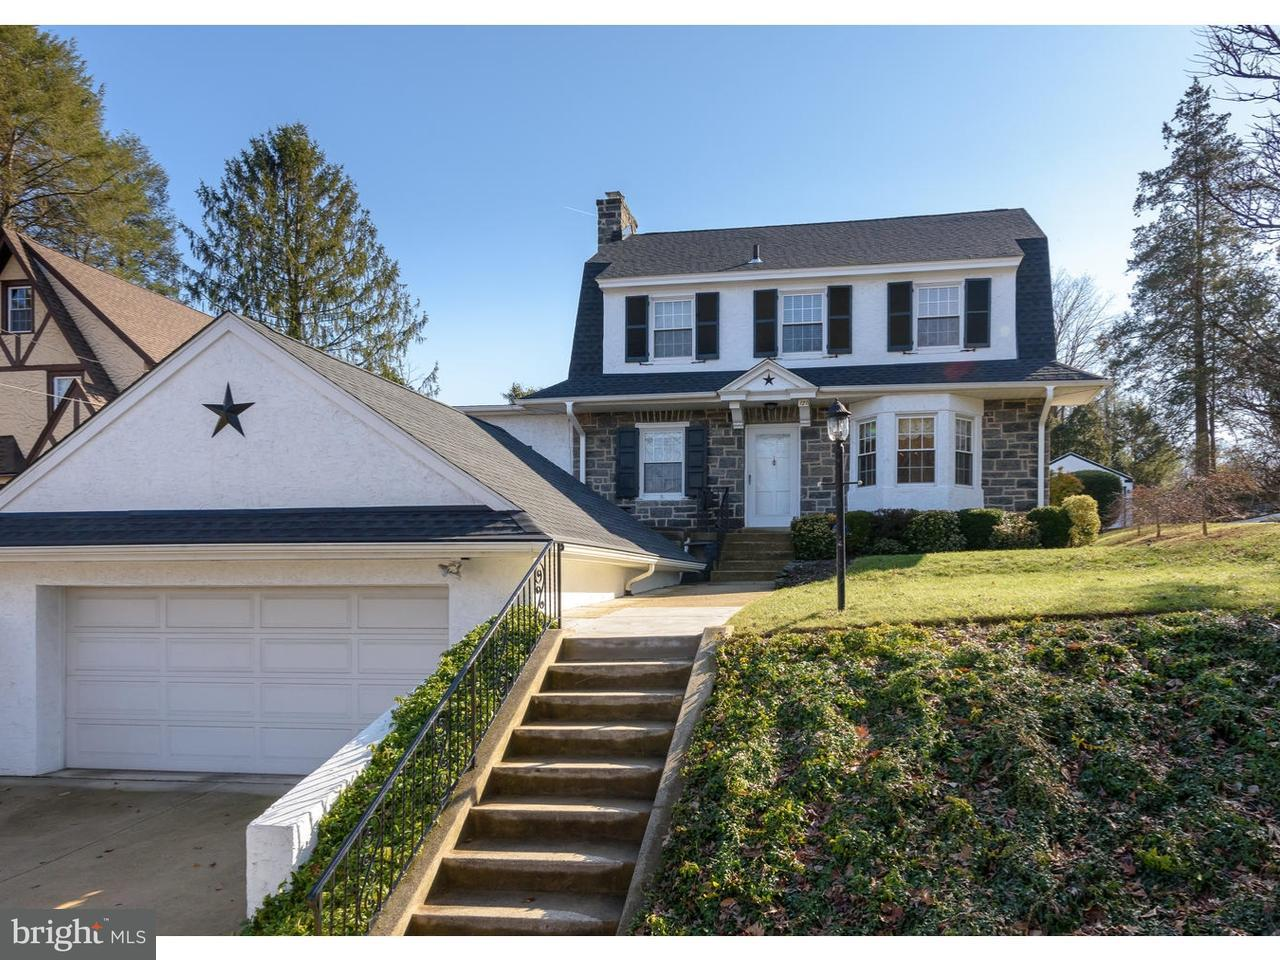 Single Family Home for Sale at 120 W SPRINGFIELD Road Springfield, Pennsylvania 19064 United States